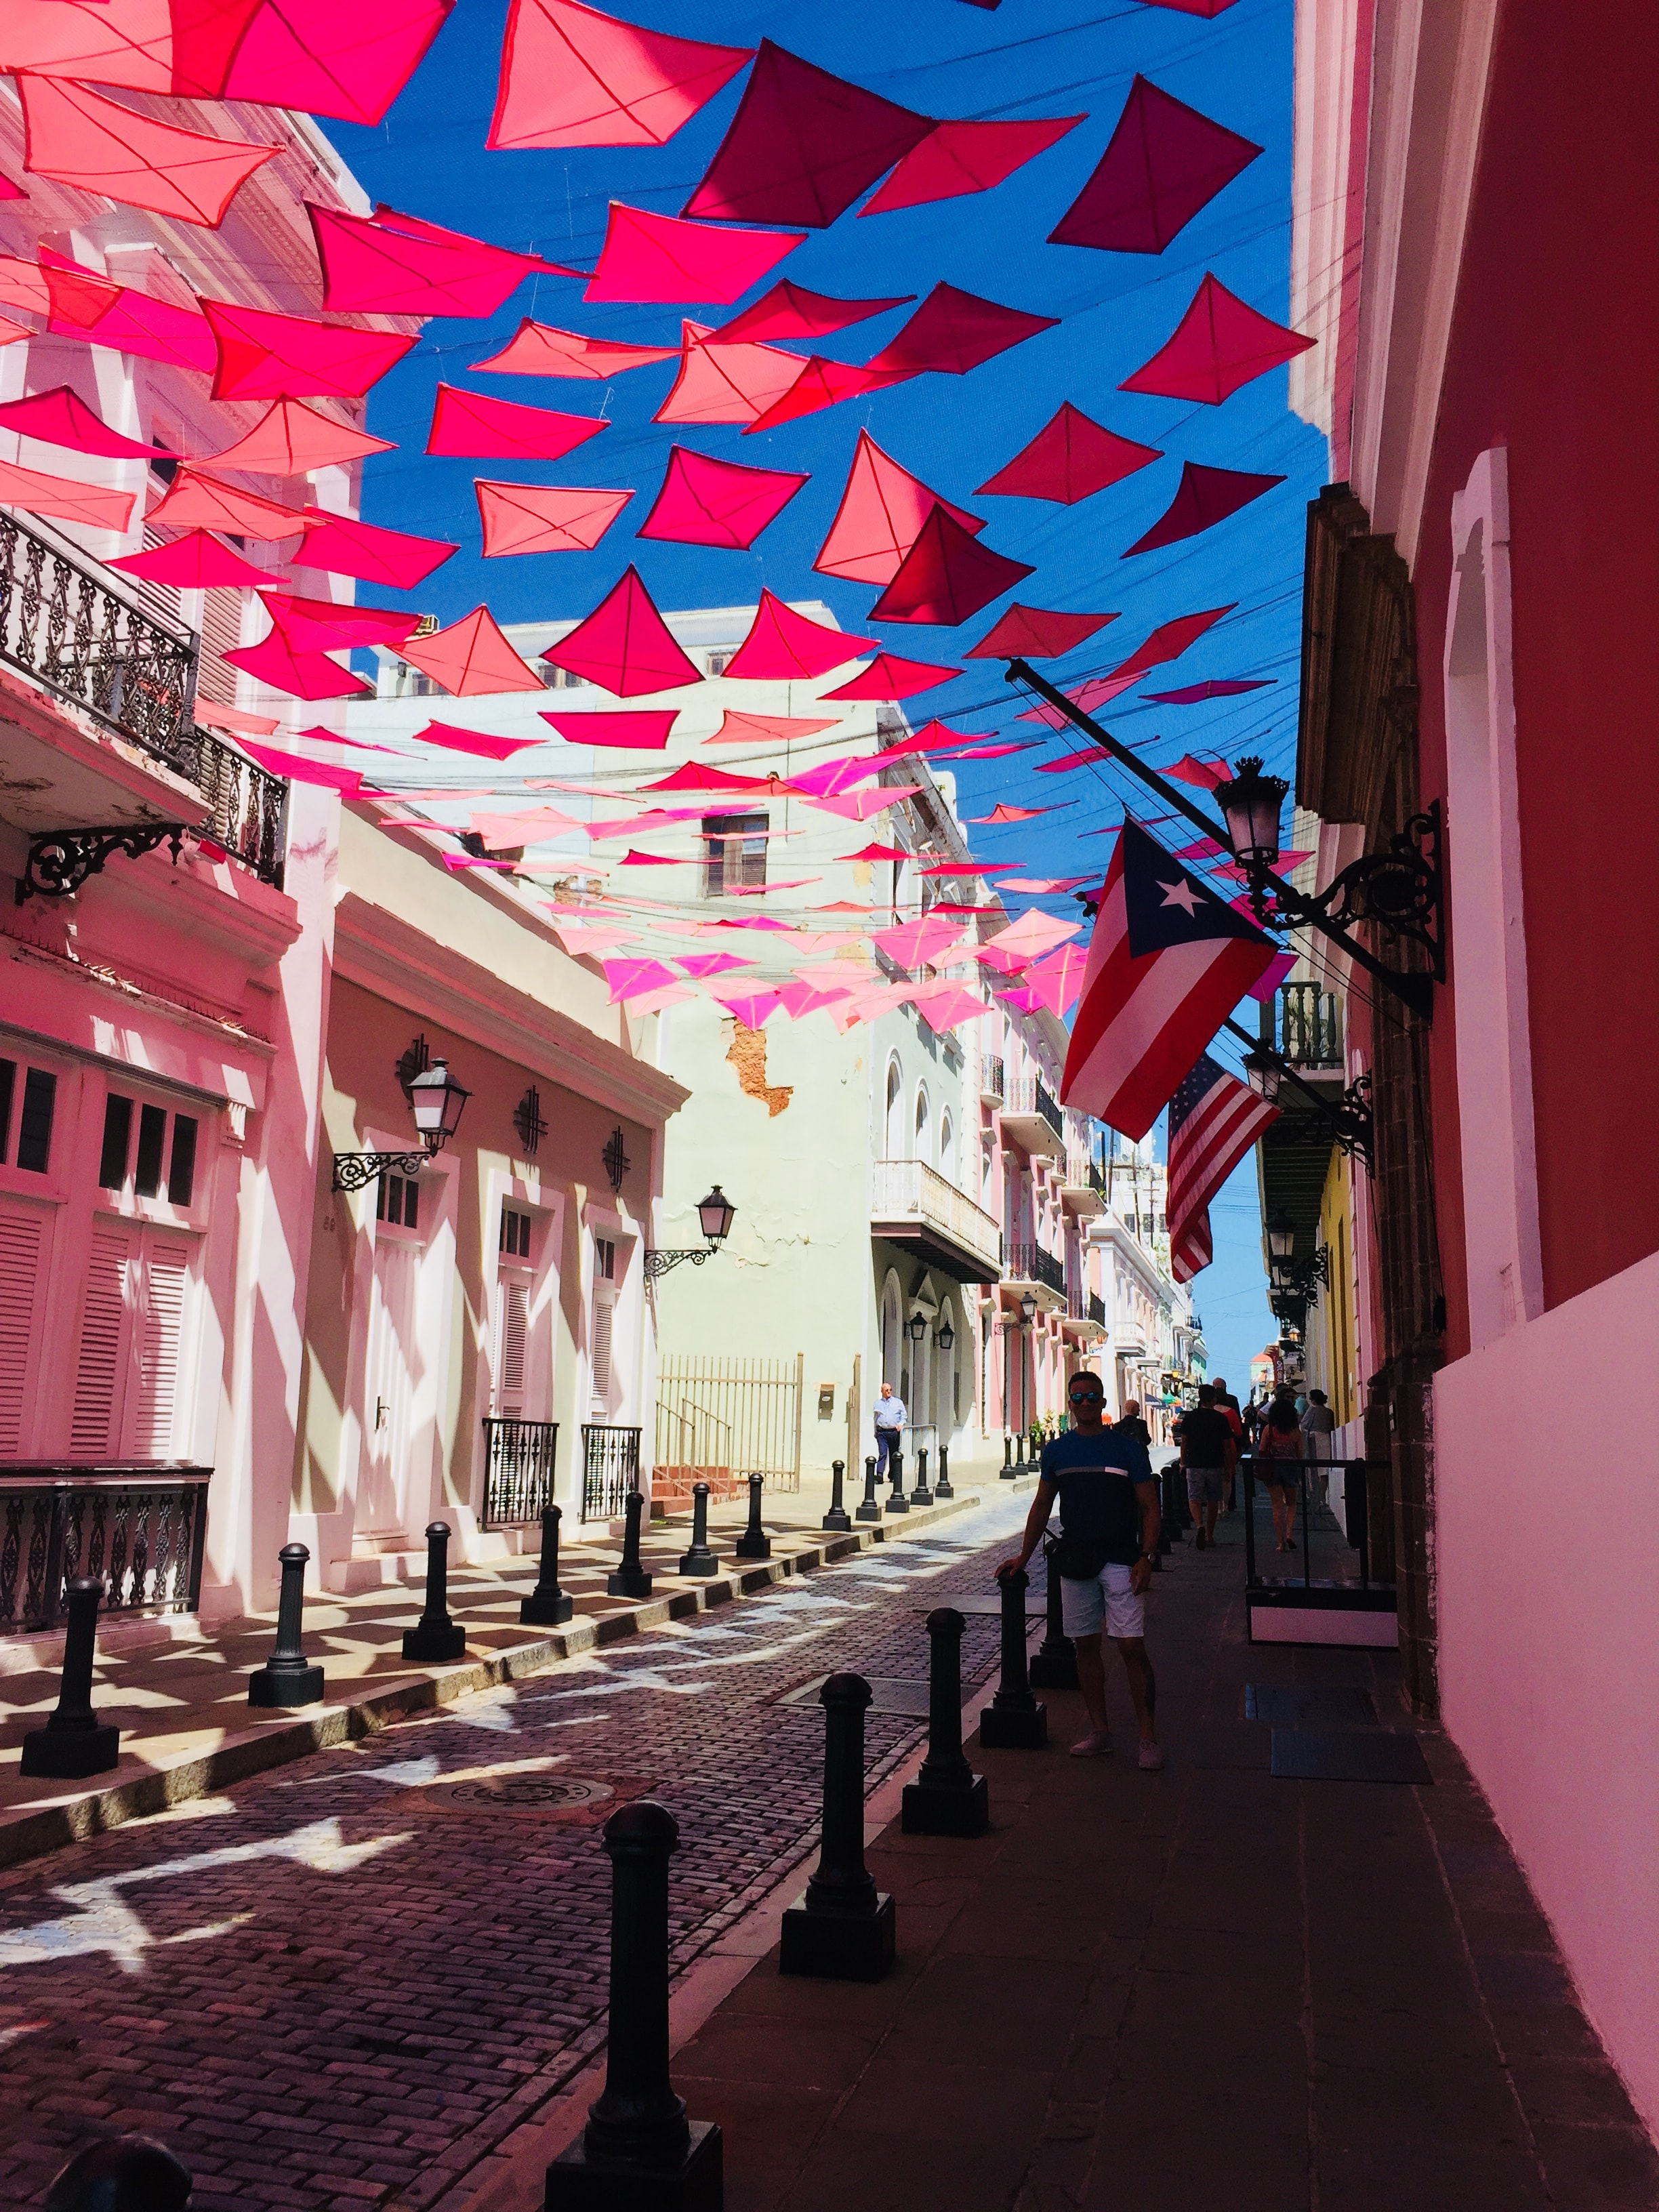 500 Puerto Rico Pictures Hd Download Free Images On Unsplash